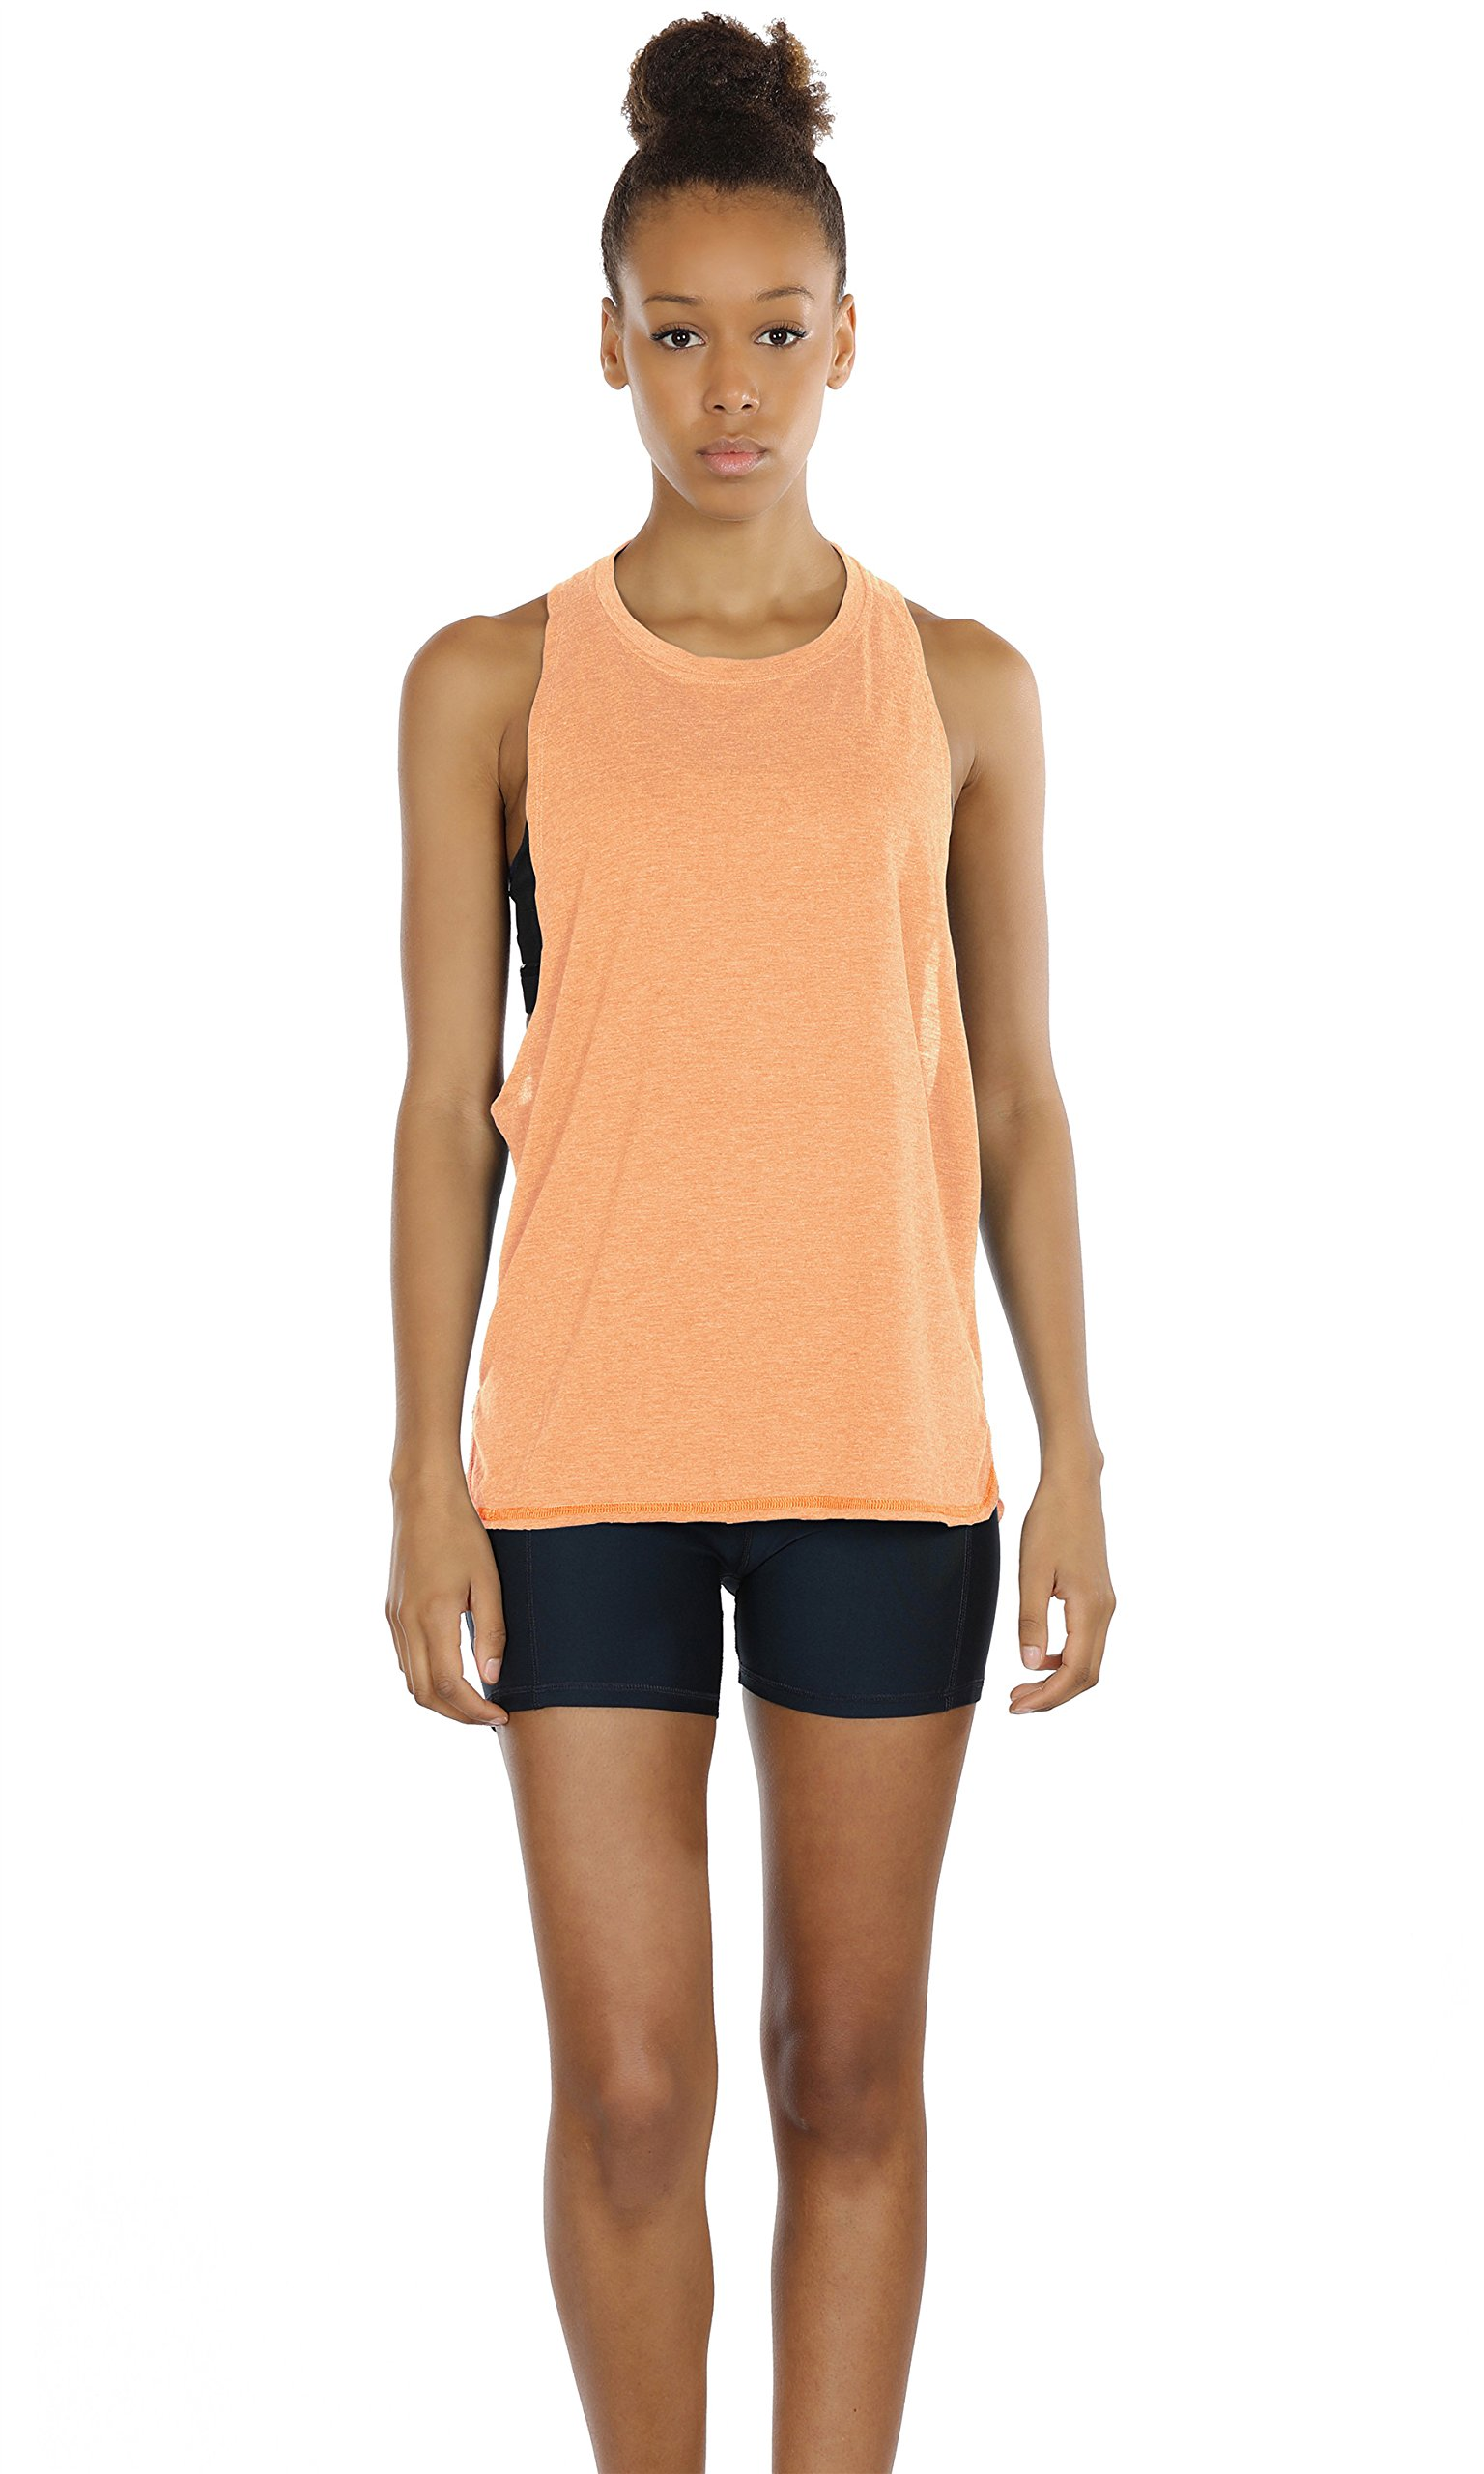 icyZone Yoga Tops Activewear Workout Clothes Sports Racerback Tank Tops for Women (XL, Pumpkin)